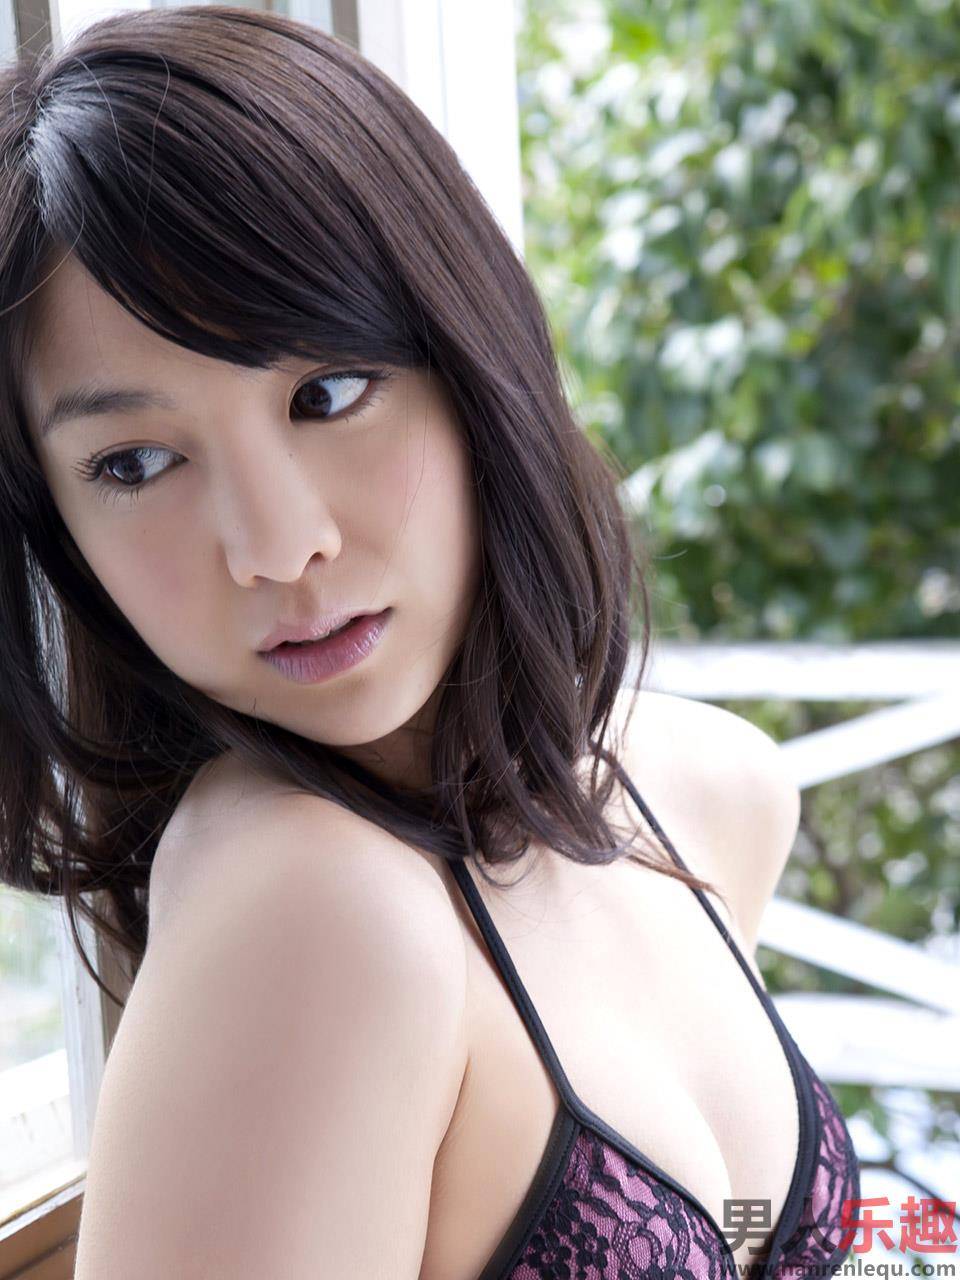 Hot Japanese AV Girls Yui Koike 小池唯 Sexy Photos Gallery  4